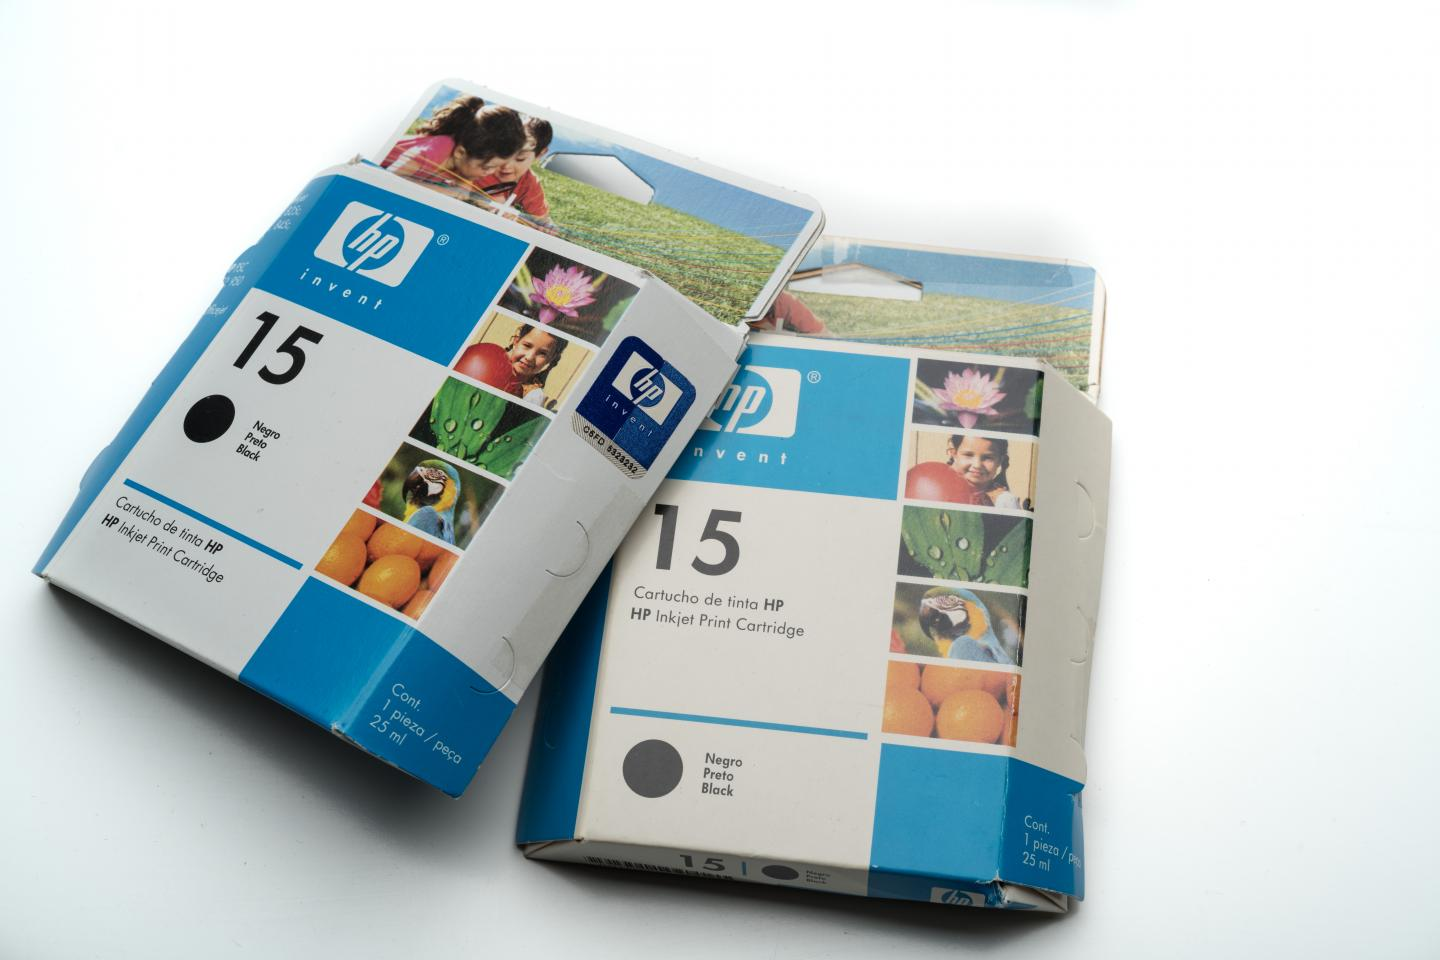 HP Seized Over 4.5 Million Counterfeit Print Products and Components Globally Last Year